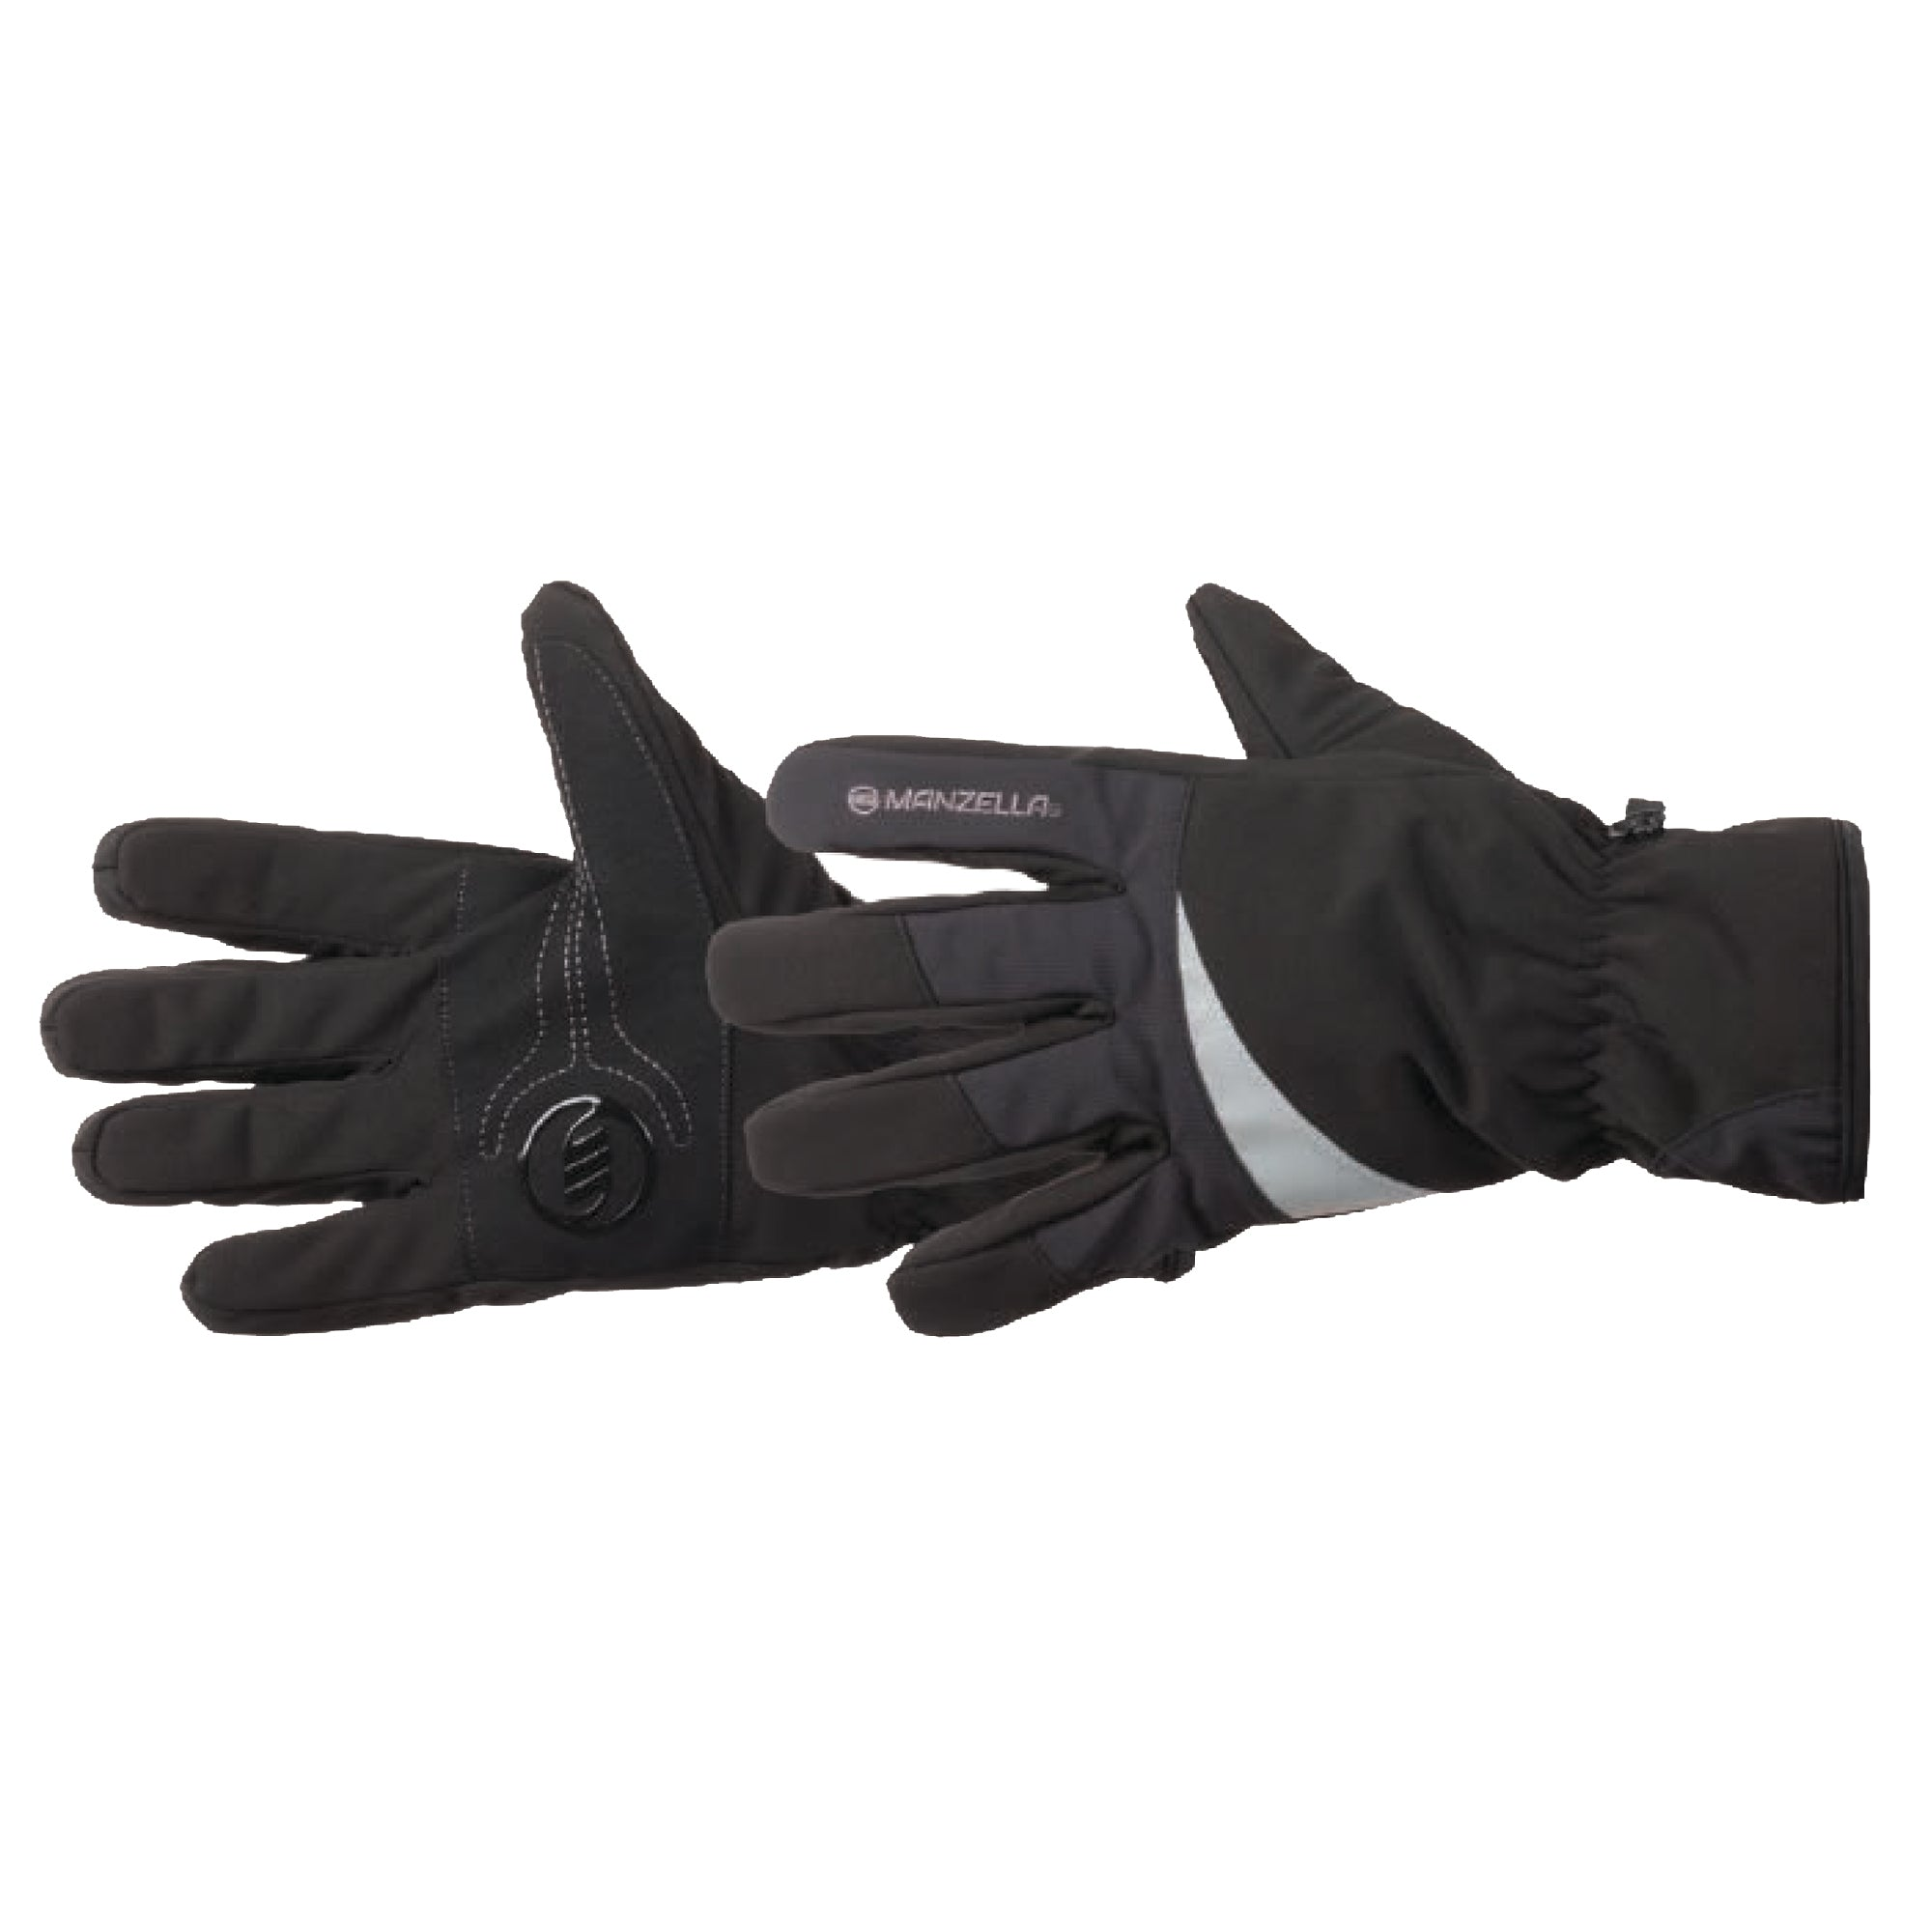 Manzella TALUS Outdoor Gloves for Men